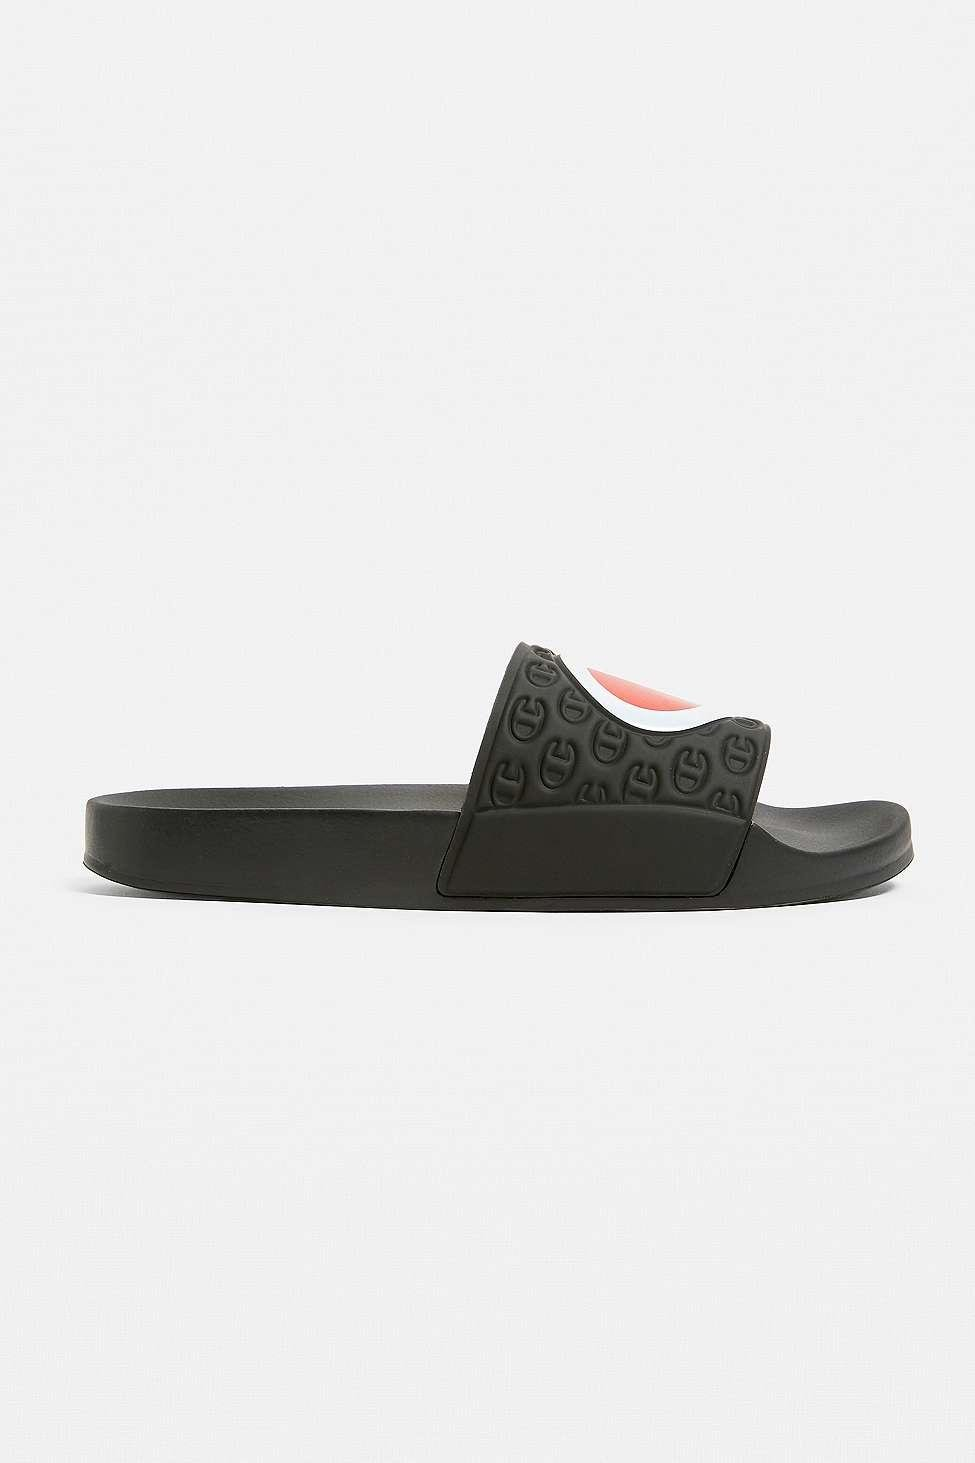 7dbdeb4a44586 Champion - Multi-lido Black Pool Sliders - Mens S for Men - Lyst. View  fullscreen